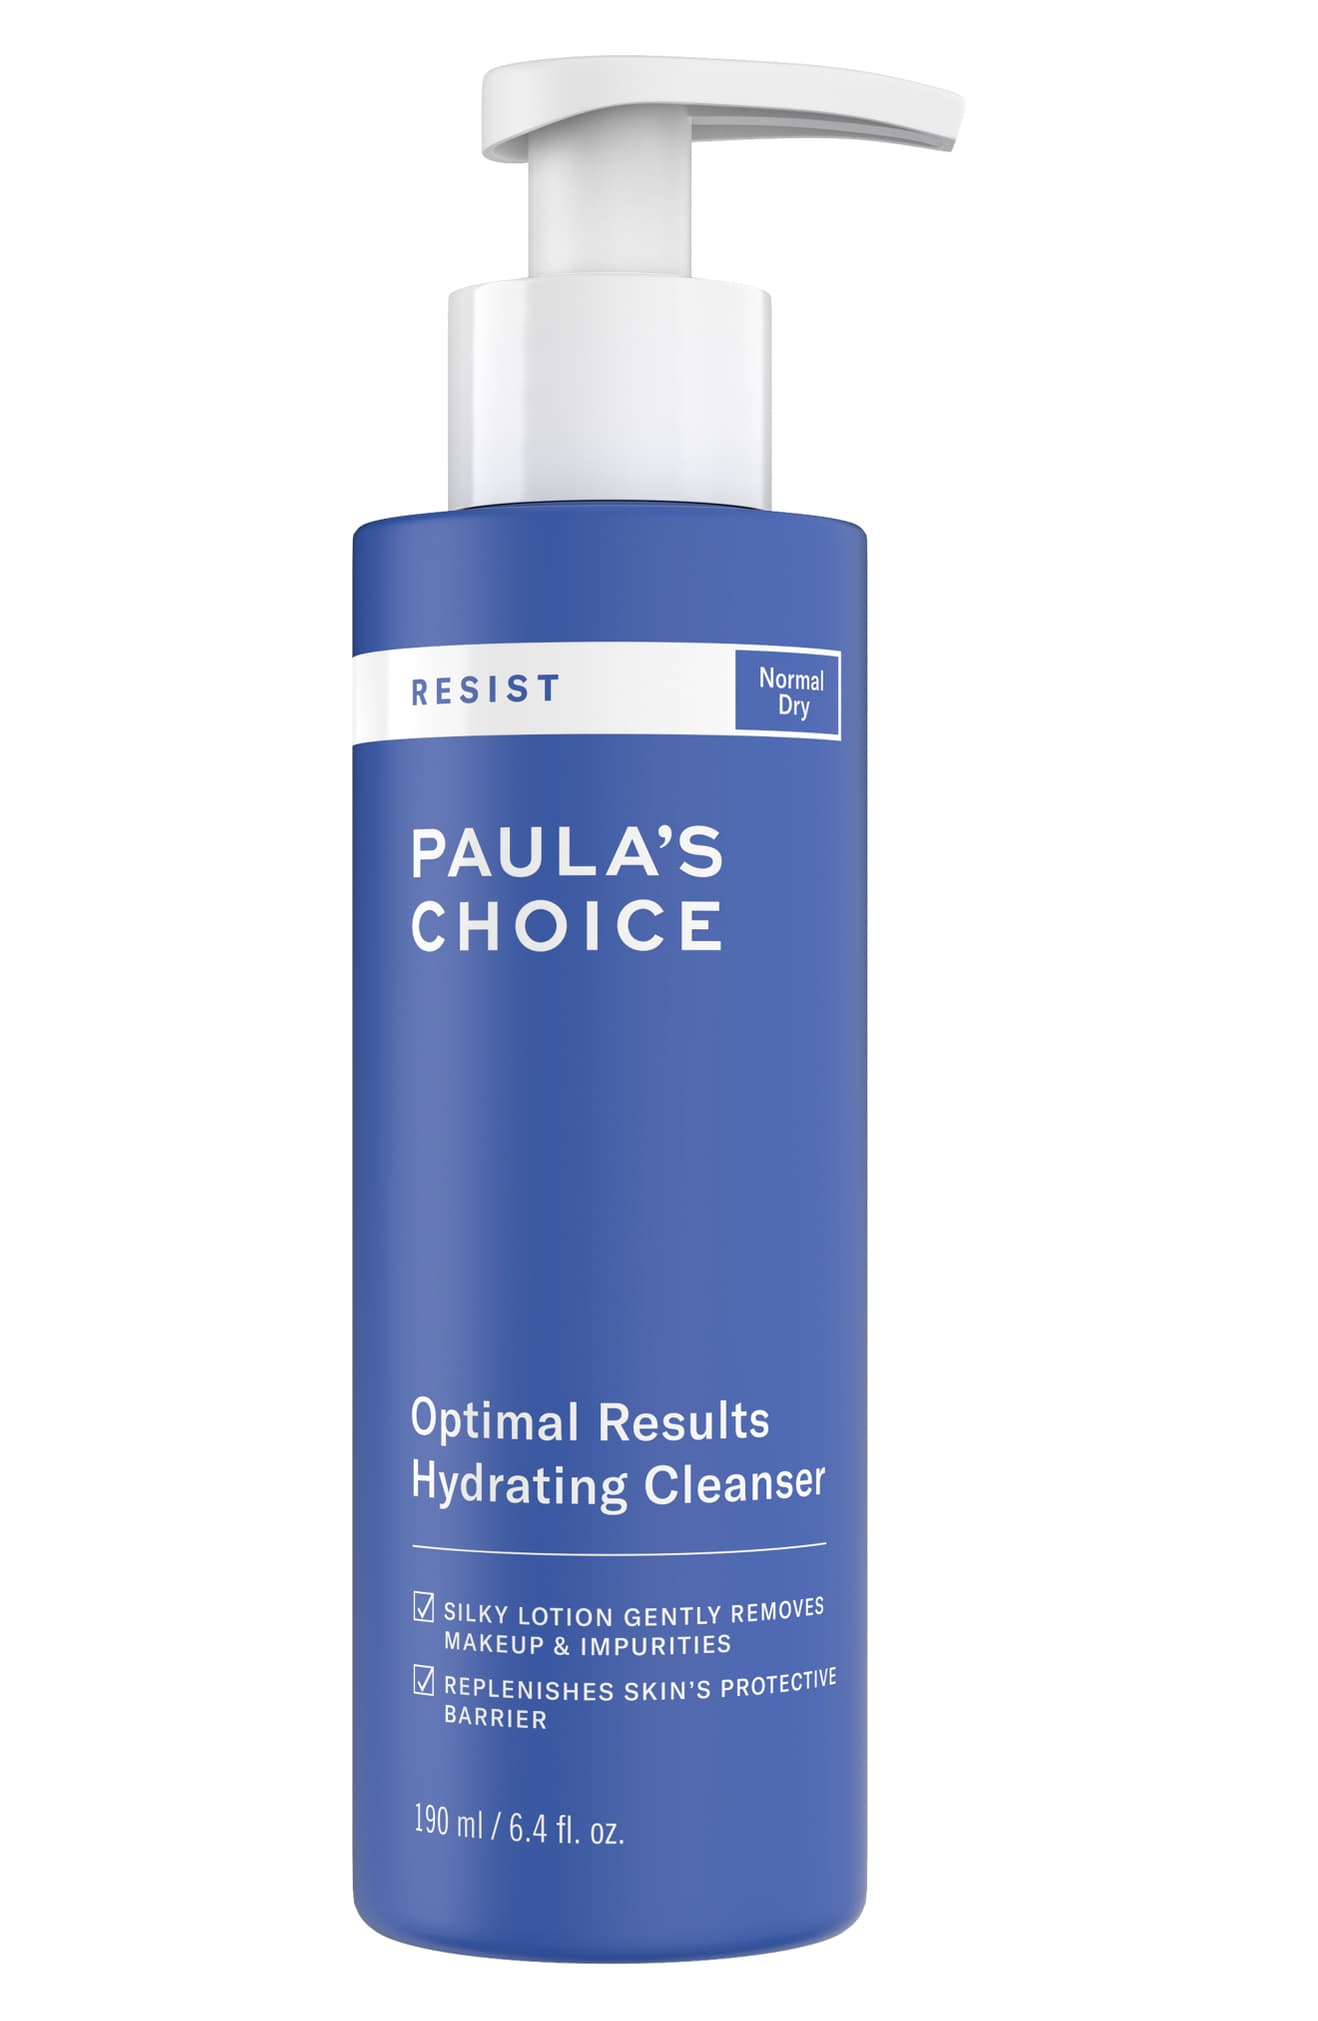 Paula's Choice Resist Optimal Results Hydrating Cleanser